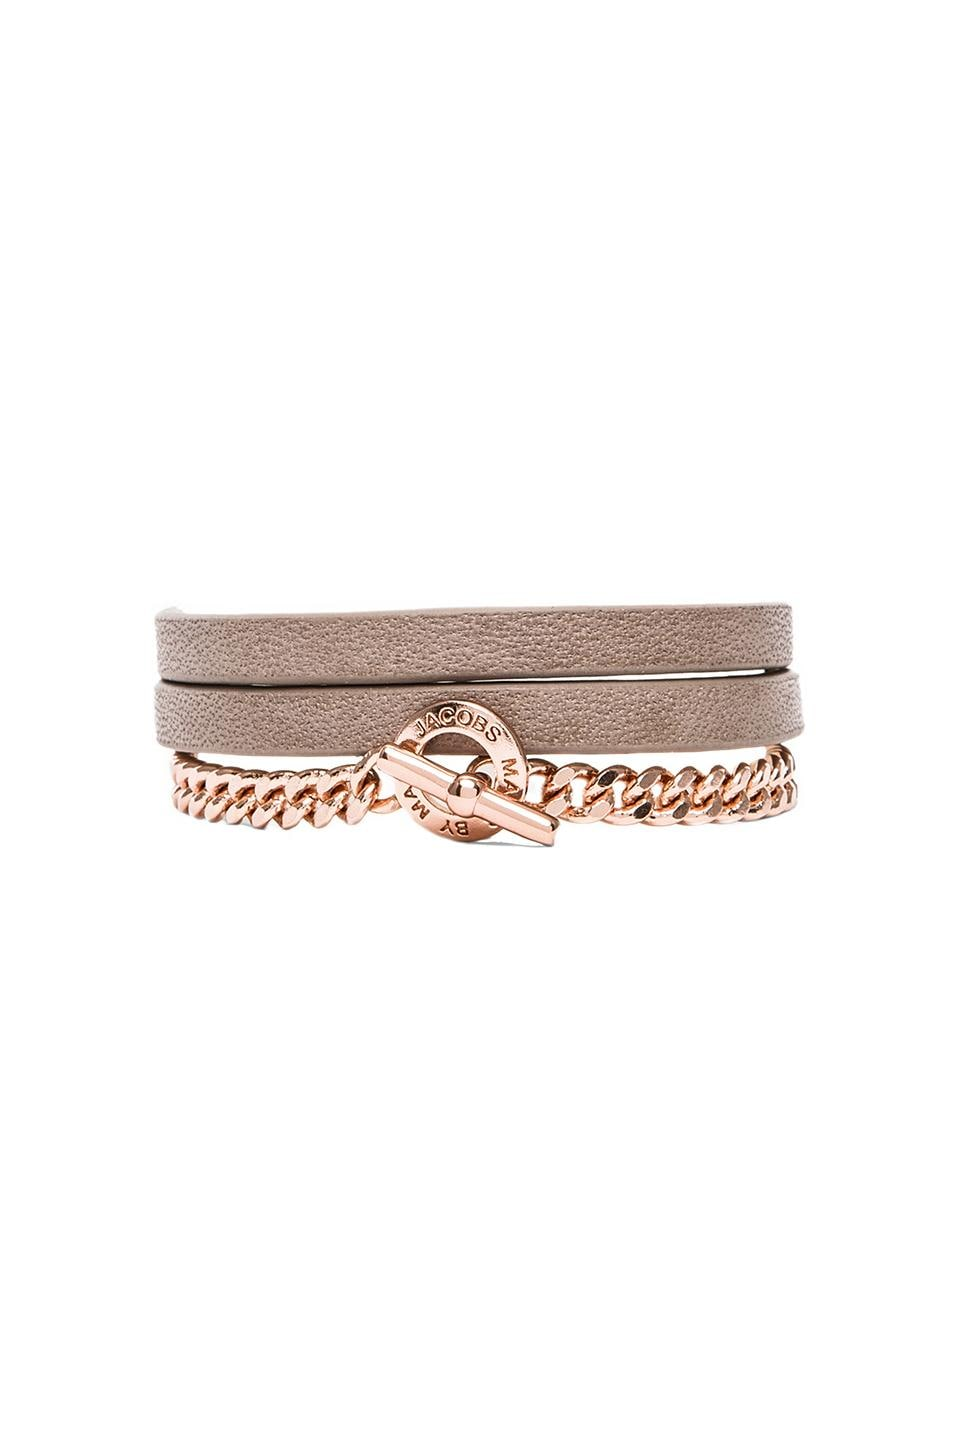 Marc by Marc Jacobs Triple Wrap Leather & Chain Bracelet in Warm Zinc (Rose Gold)